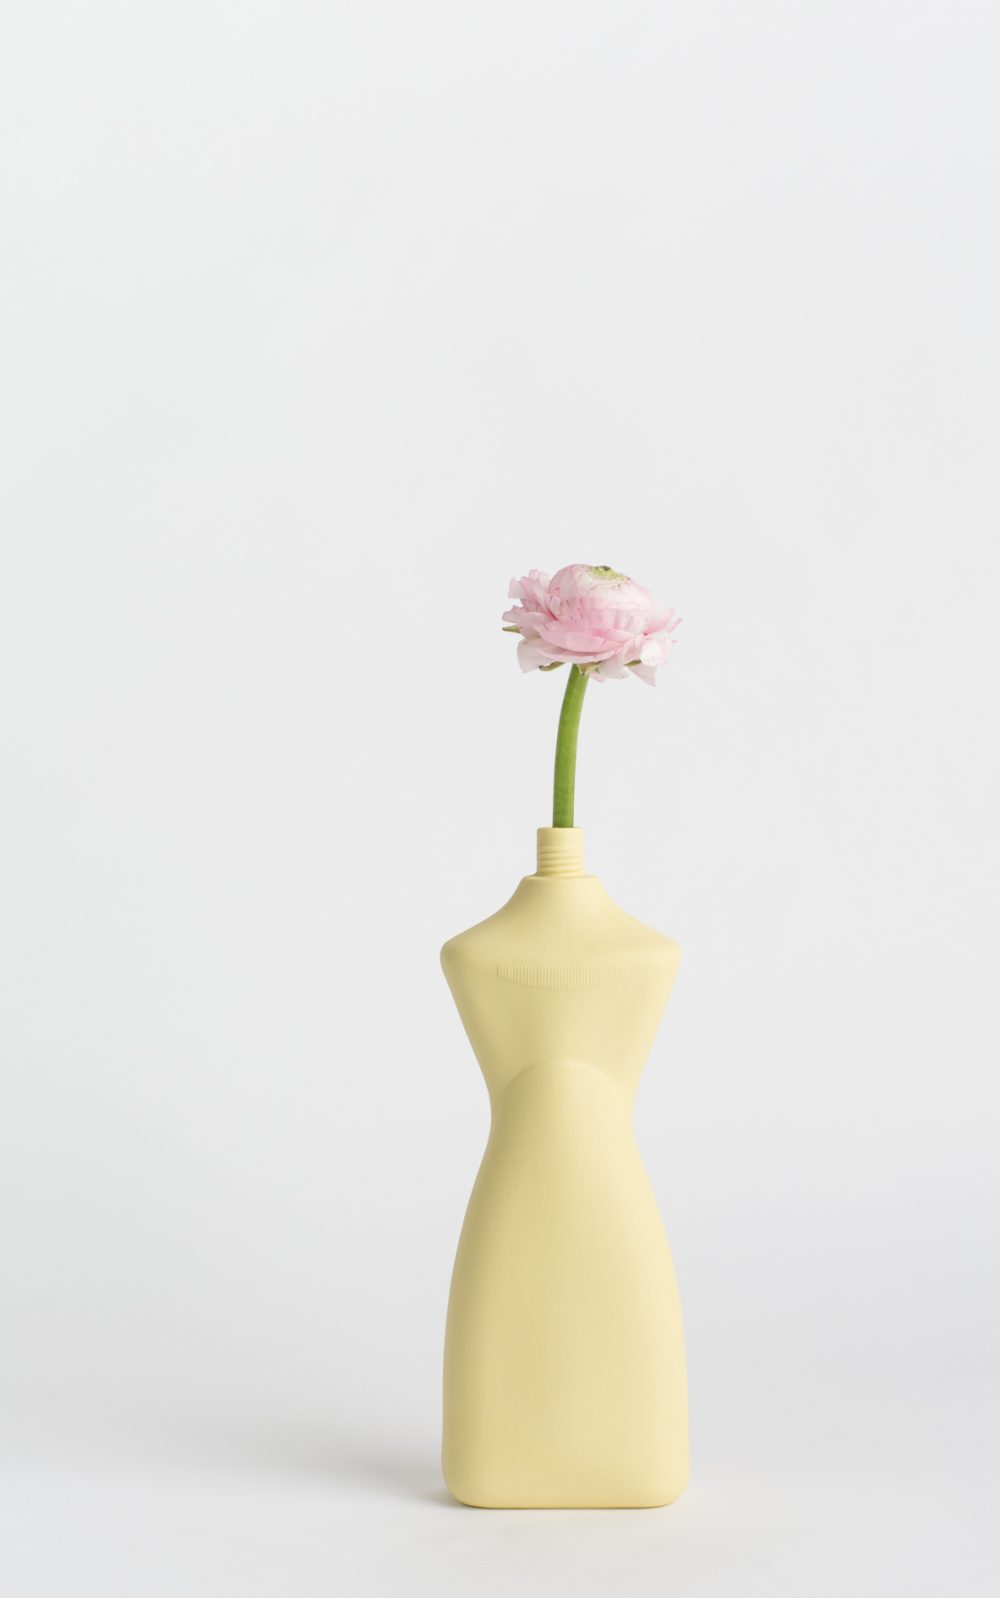 bottle vase #8 fresh yellow with flower